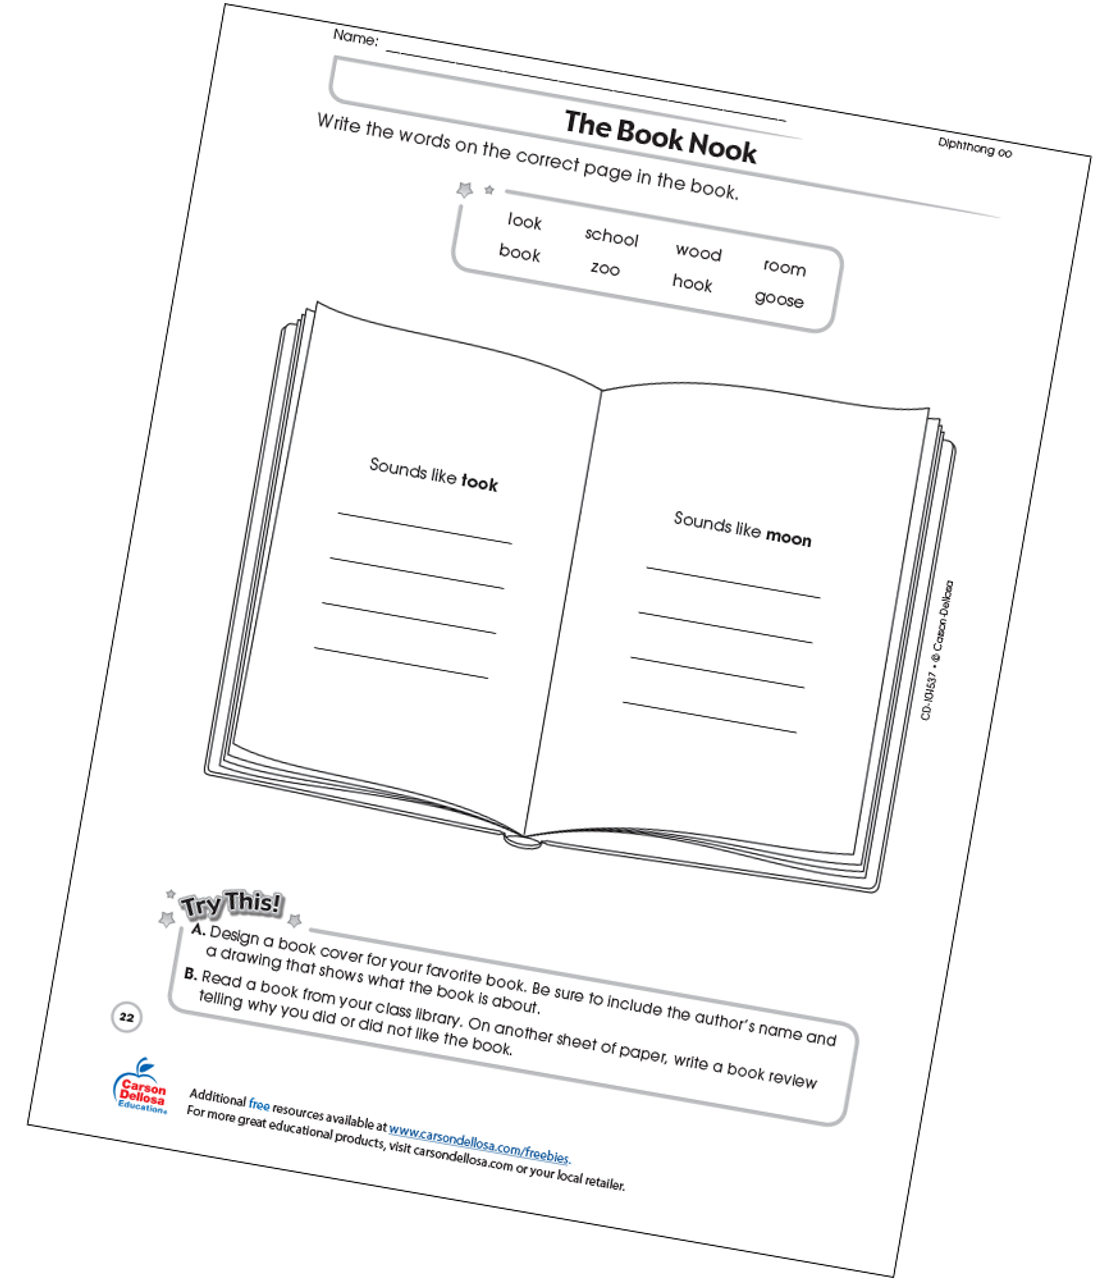 graphic relating to Free Printable Books for 2nd Grade identify The Guide Nook Free of charge Printable Carson Dellosa